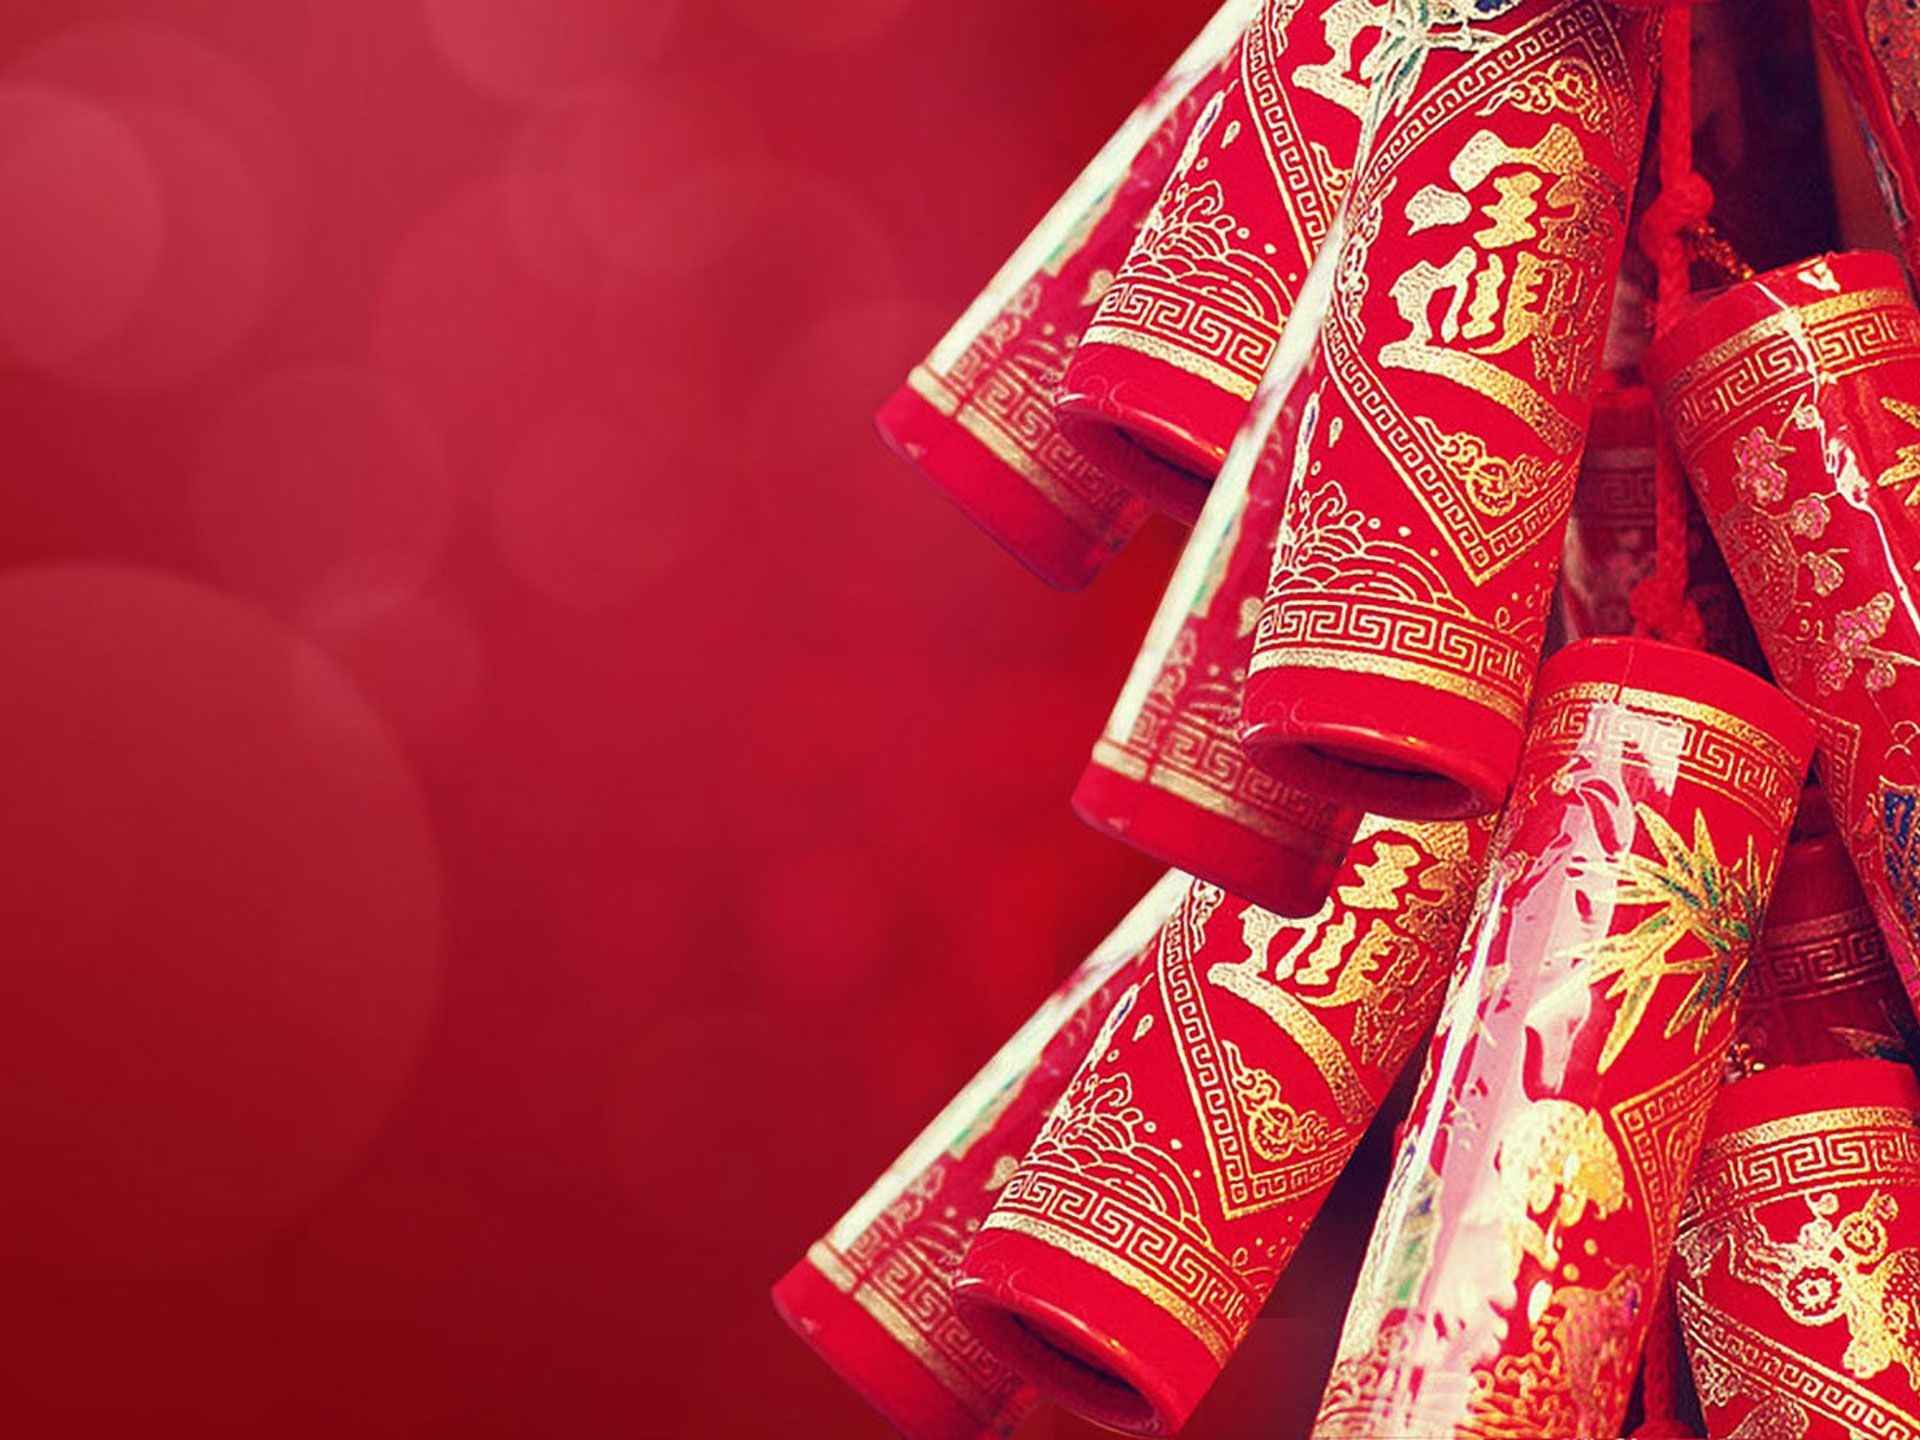 Res: 1920x1440, Holiday - Chinese New Year Fireworks Red Close-Up Wallpaper